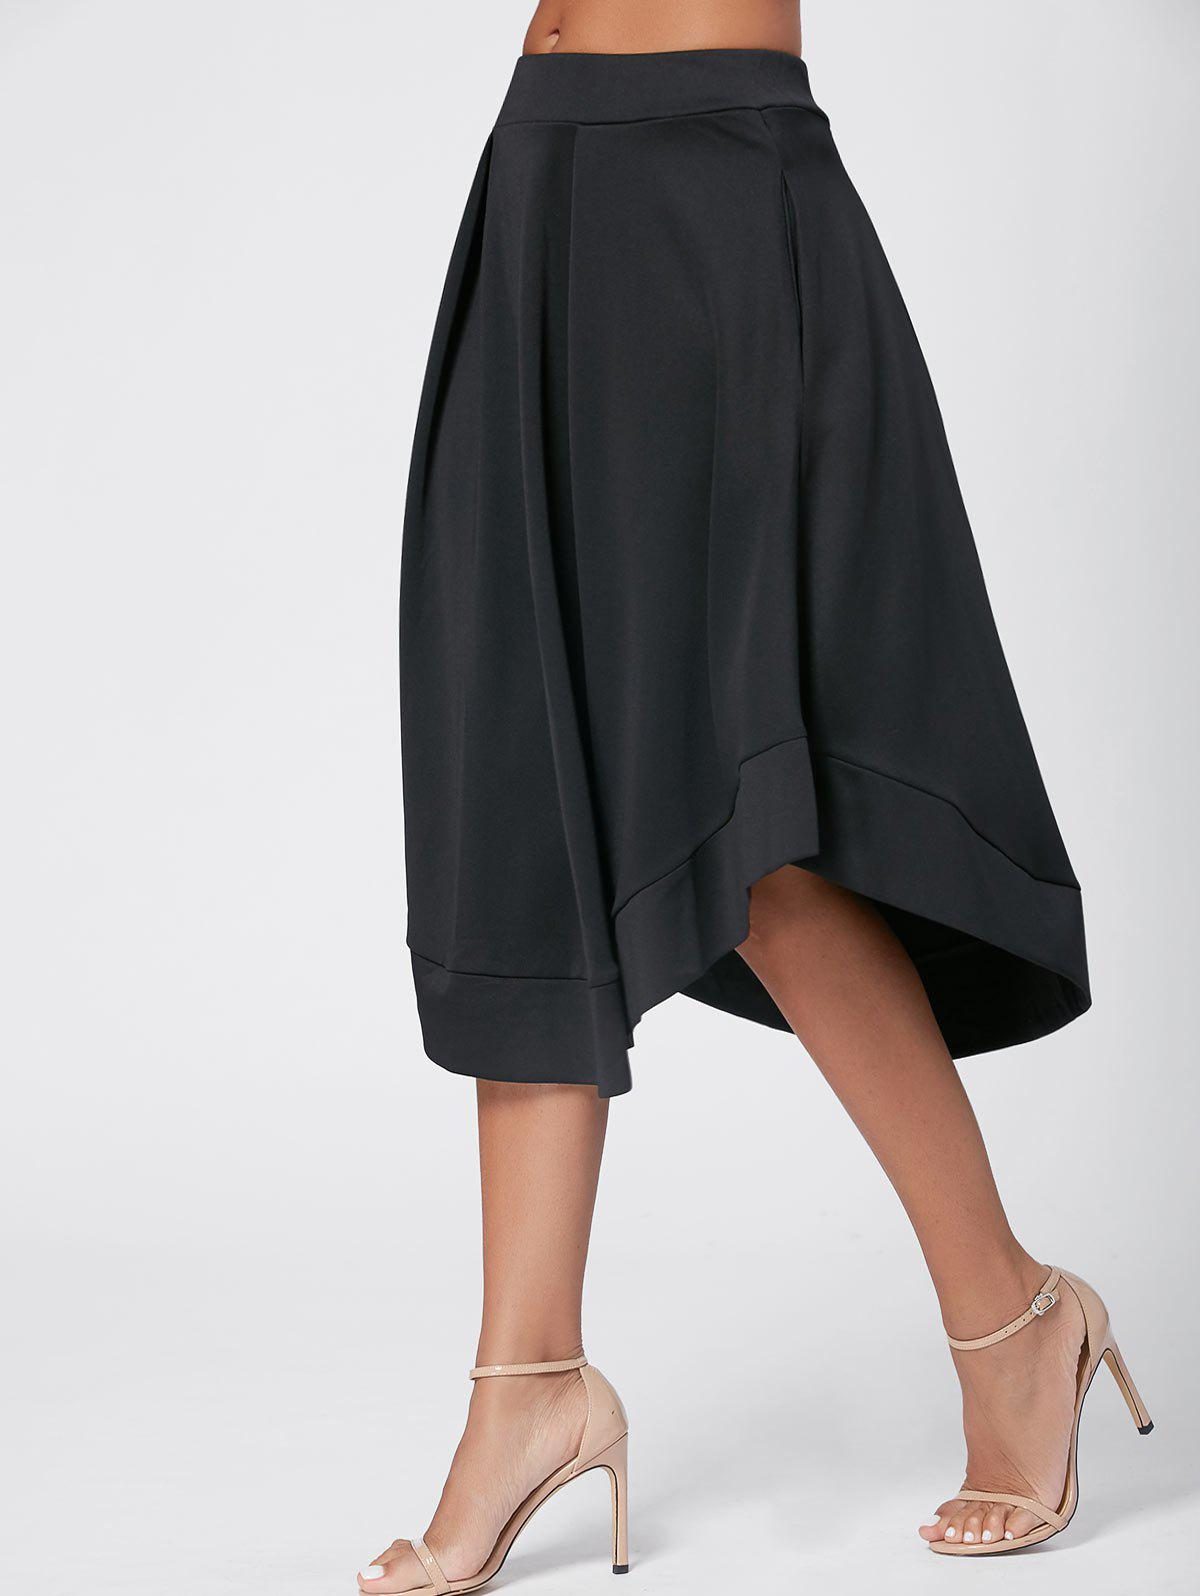 High Waist Midi Flared Skirt - BLACK M